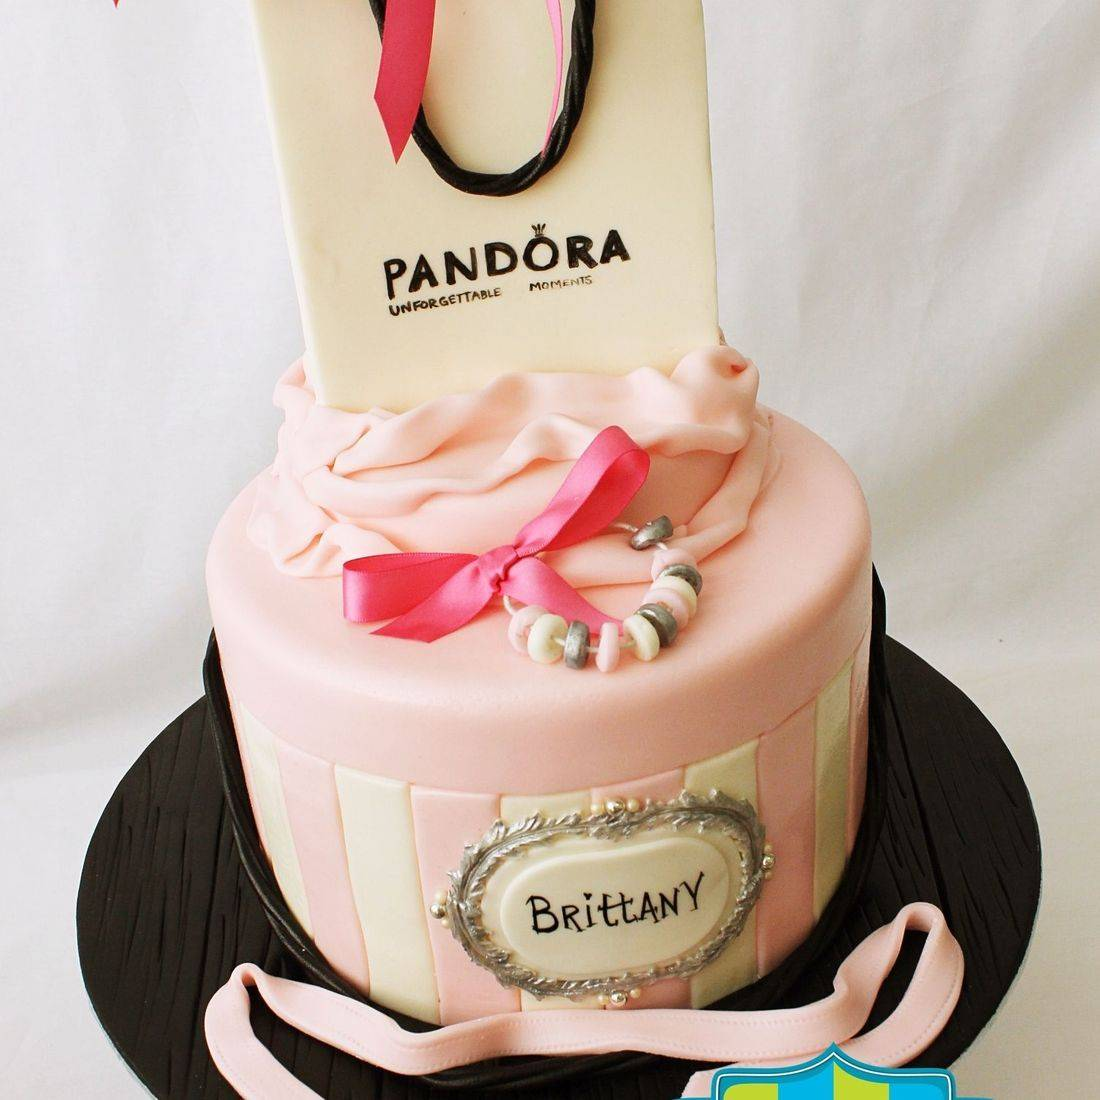 Pandora Fashion Cake Milwaukee